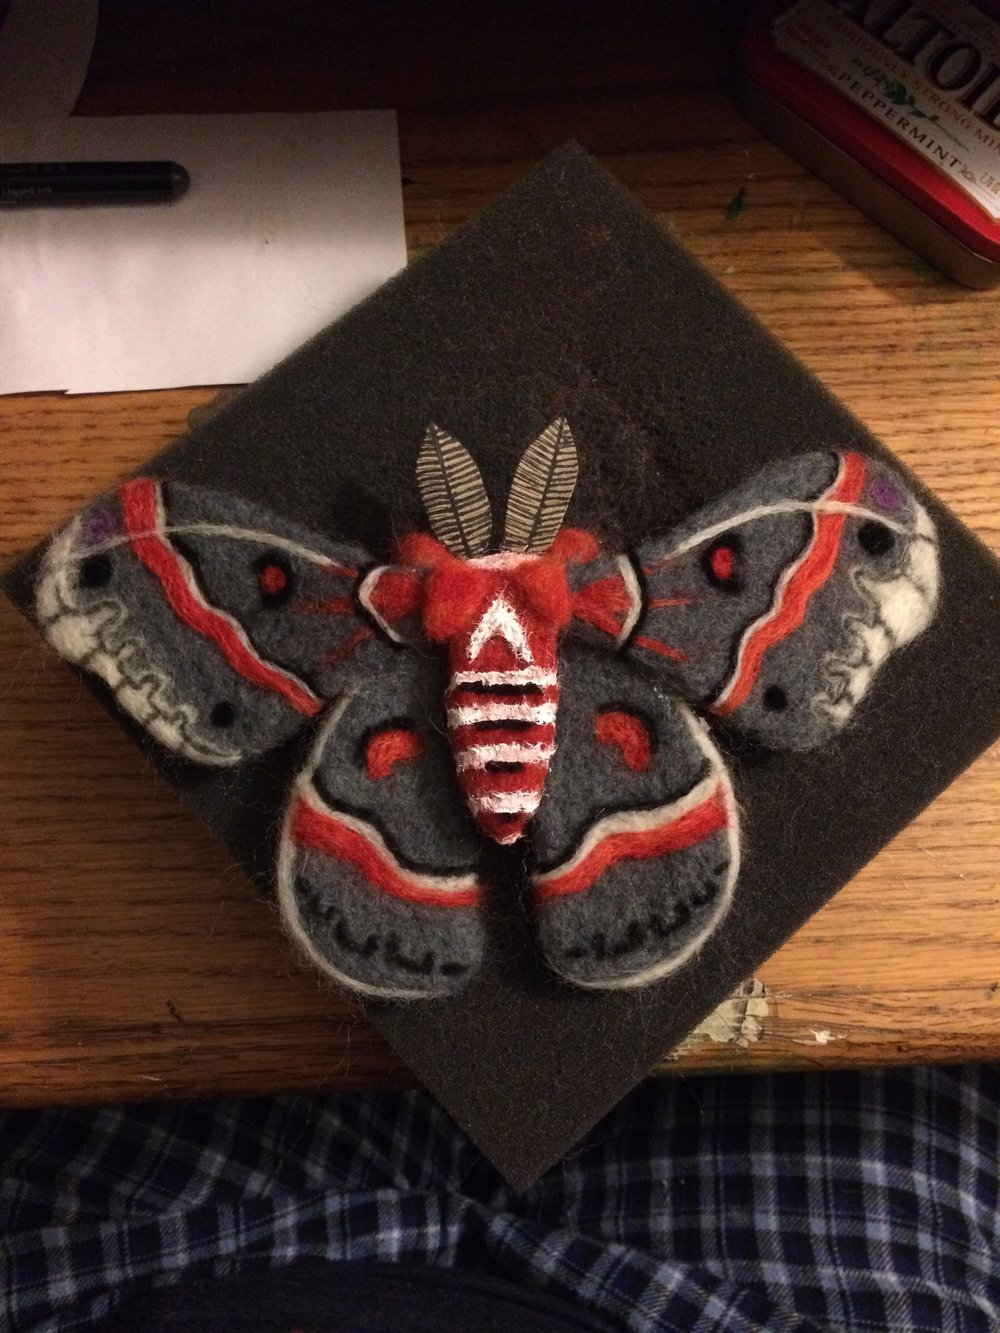 A cecropia moth made by wool needle felting.